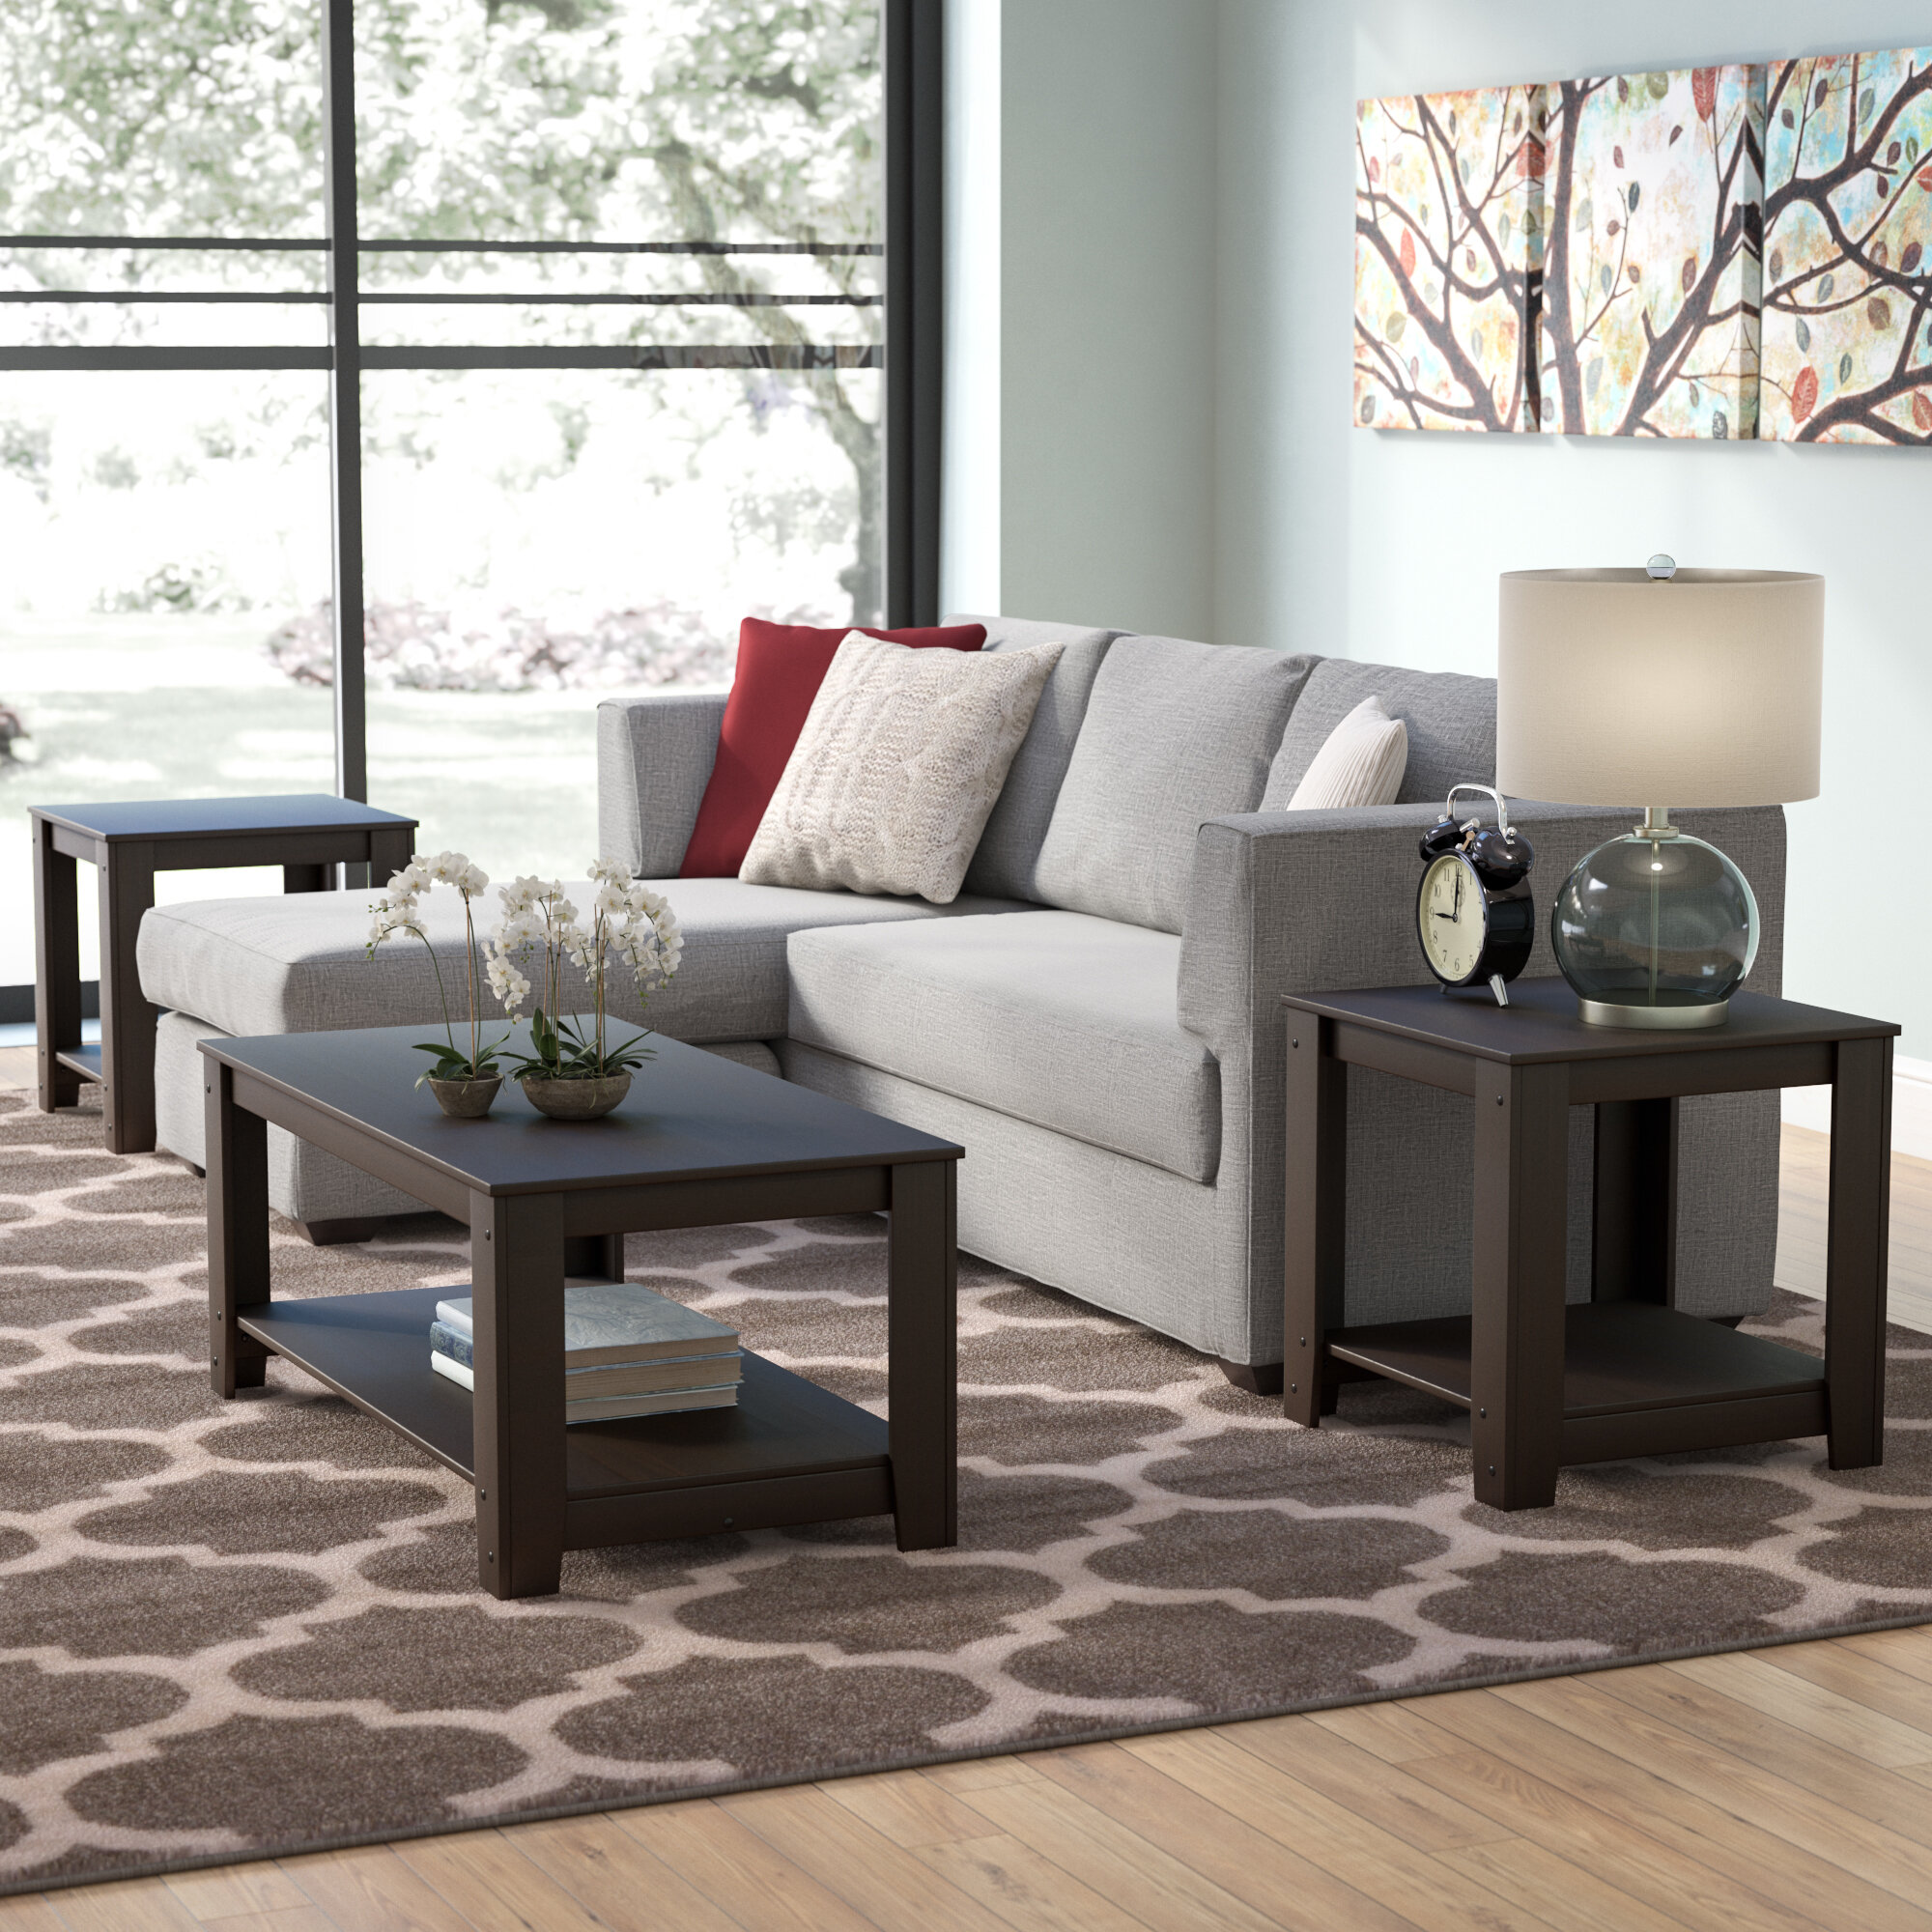 Cappuccino Coffee Table Set.Streator 3 Piece Coffee Table Set